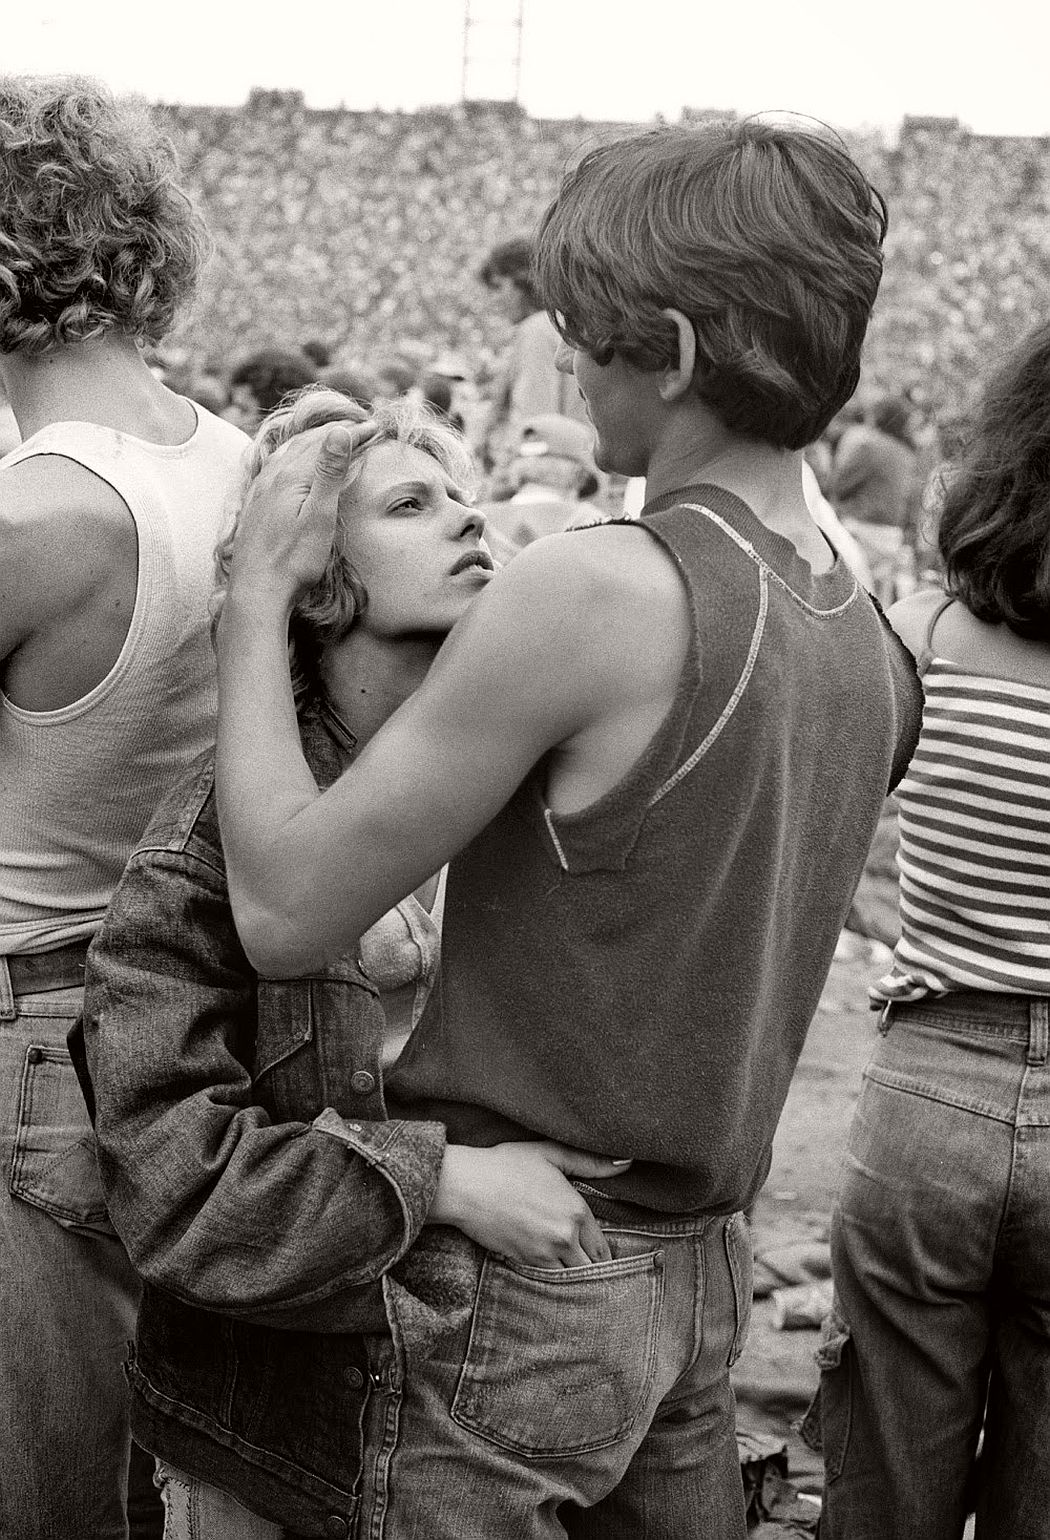 vintage-bw-photos-of-rolling-stones-fans-by-joseph-szabo-1978-22